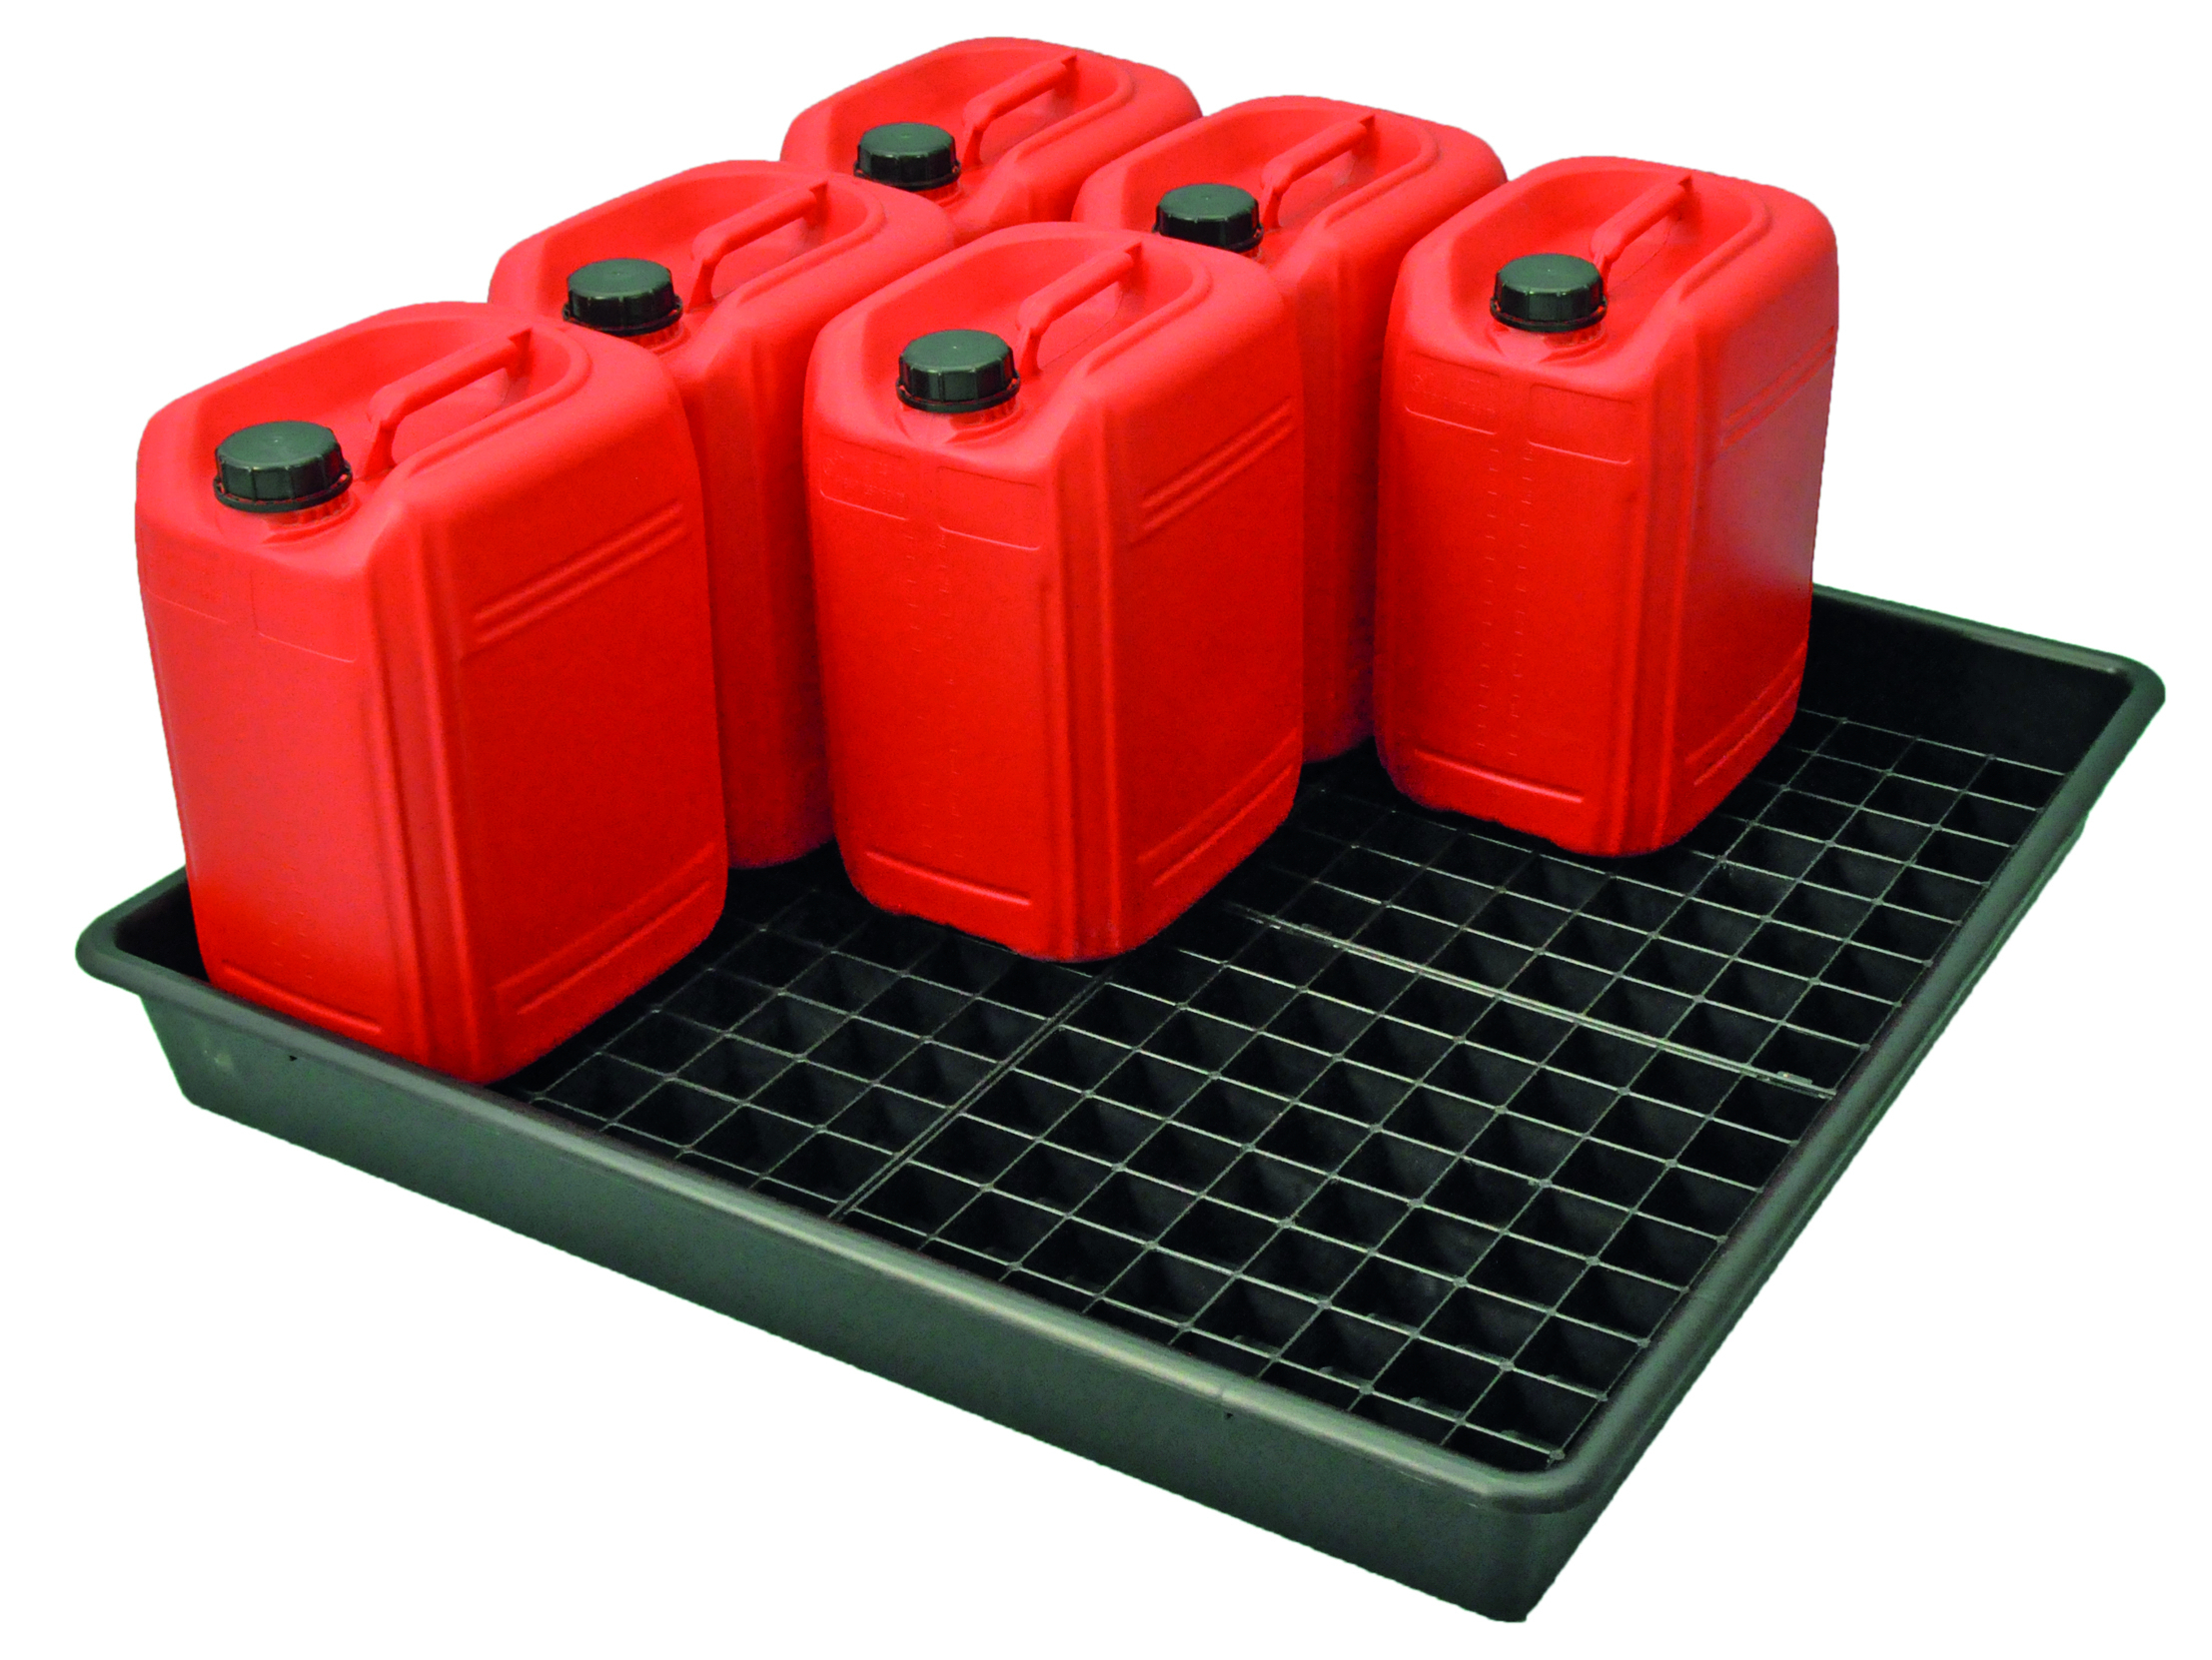 Drum Storage and Containment Trays